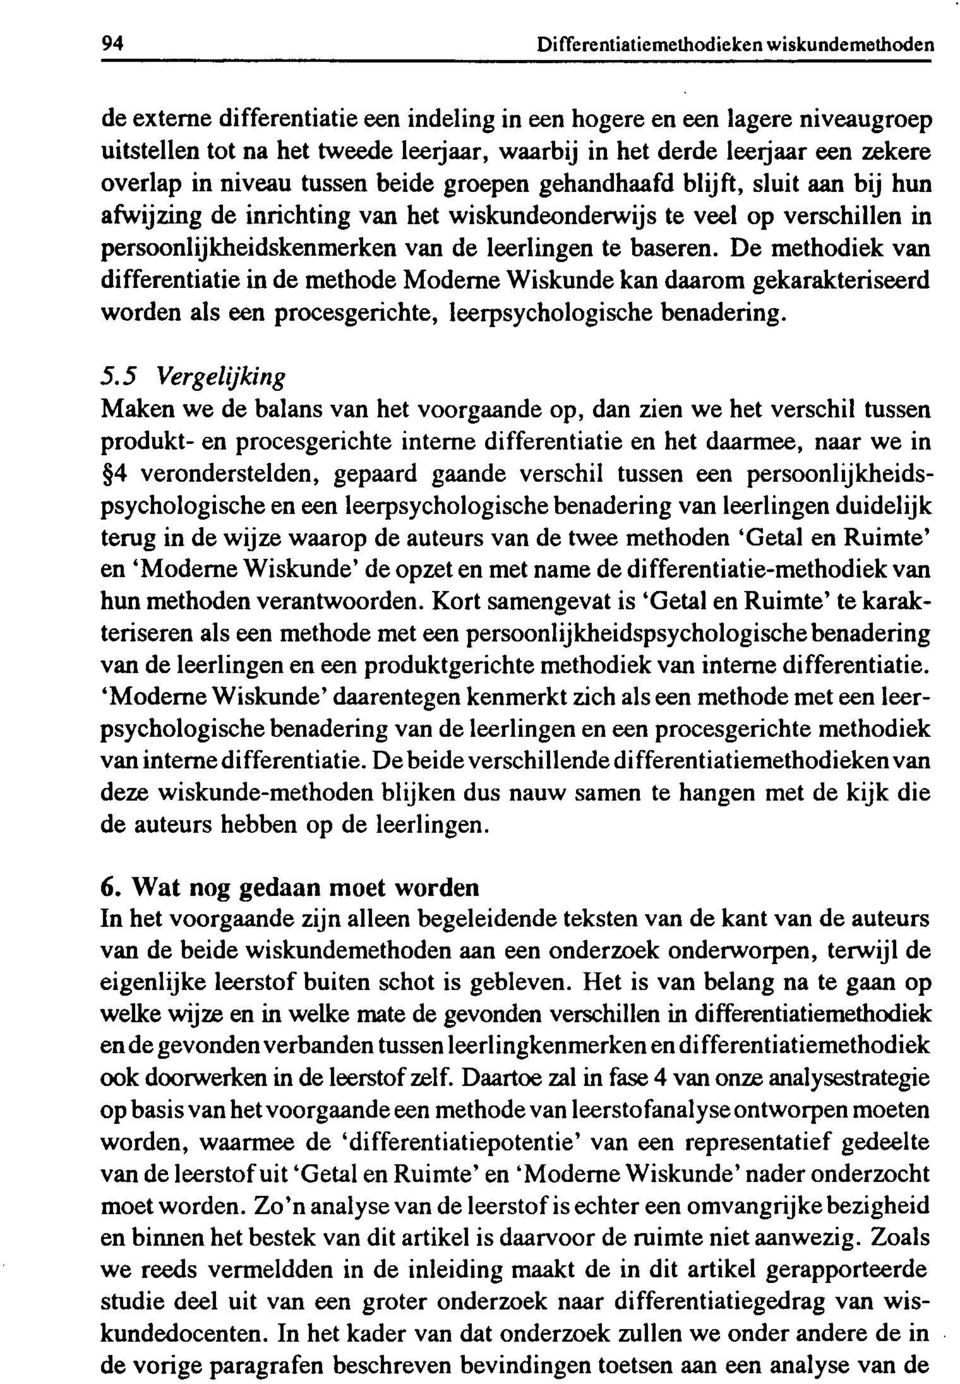 leerlingen te baseren. De methodiek van differentiatie in de methode Moderne Wiskunde kan daarom gekarakteriseerd worden als een procesgerichte, leerpsychologische benadering. 5.